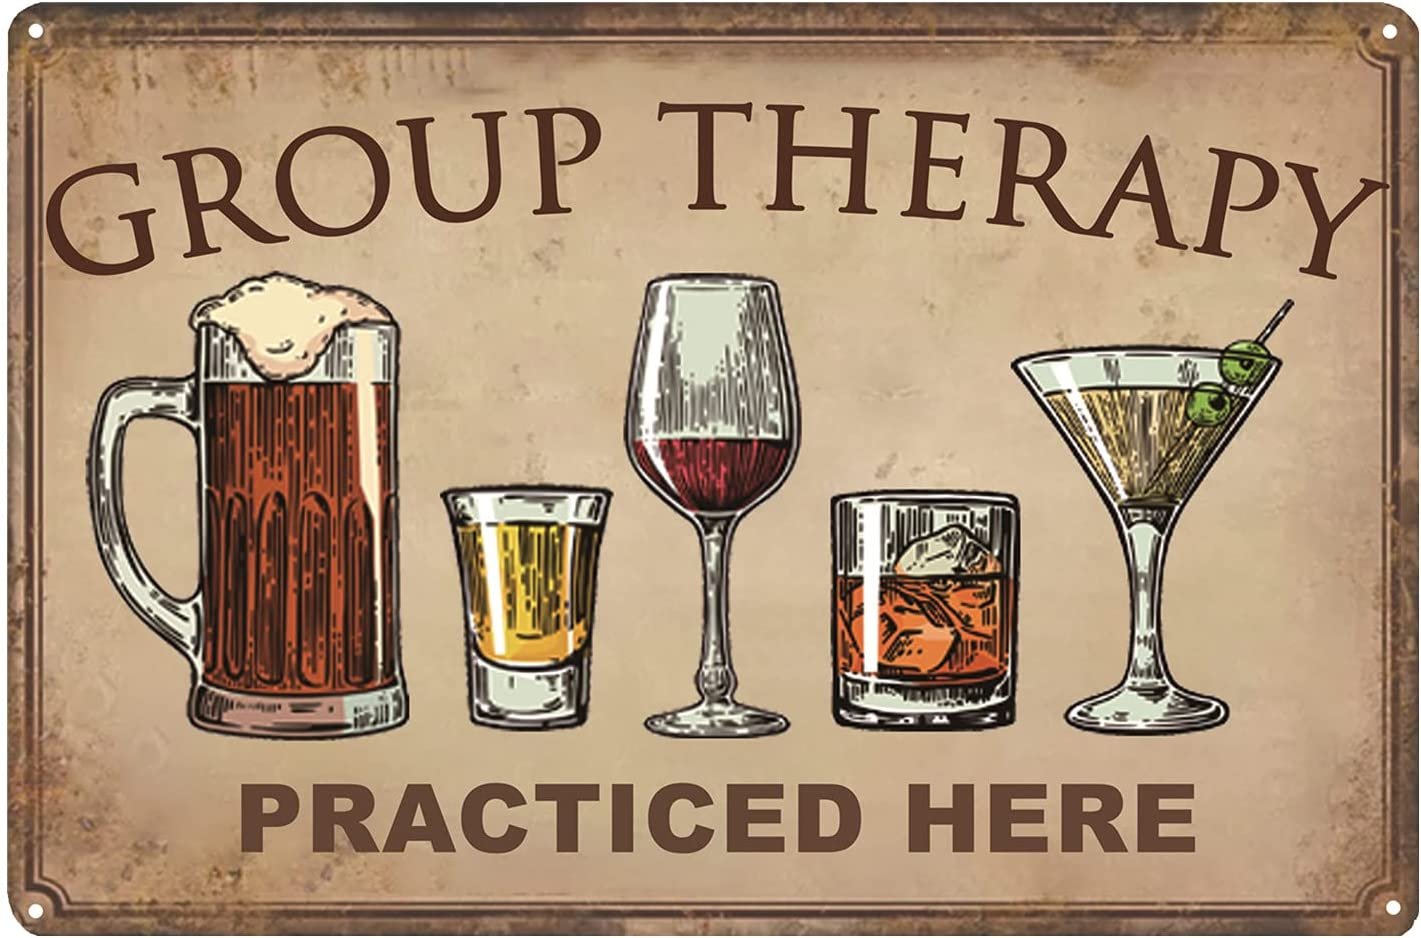 CWEIDP Bar Wall Decor Beer Signs Metal Tin Sign for Patio Backyard and Pool,Group Therapy Practiced Here Funny Personalized Vintage Signs for Home Decor Art Accessories Decorations Outdoor 8x12 Inch